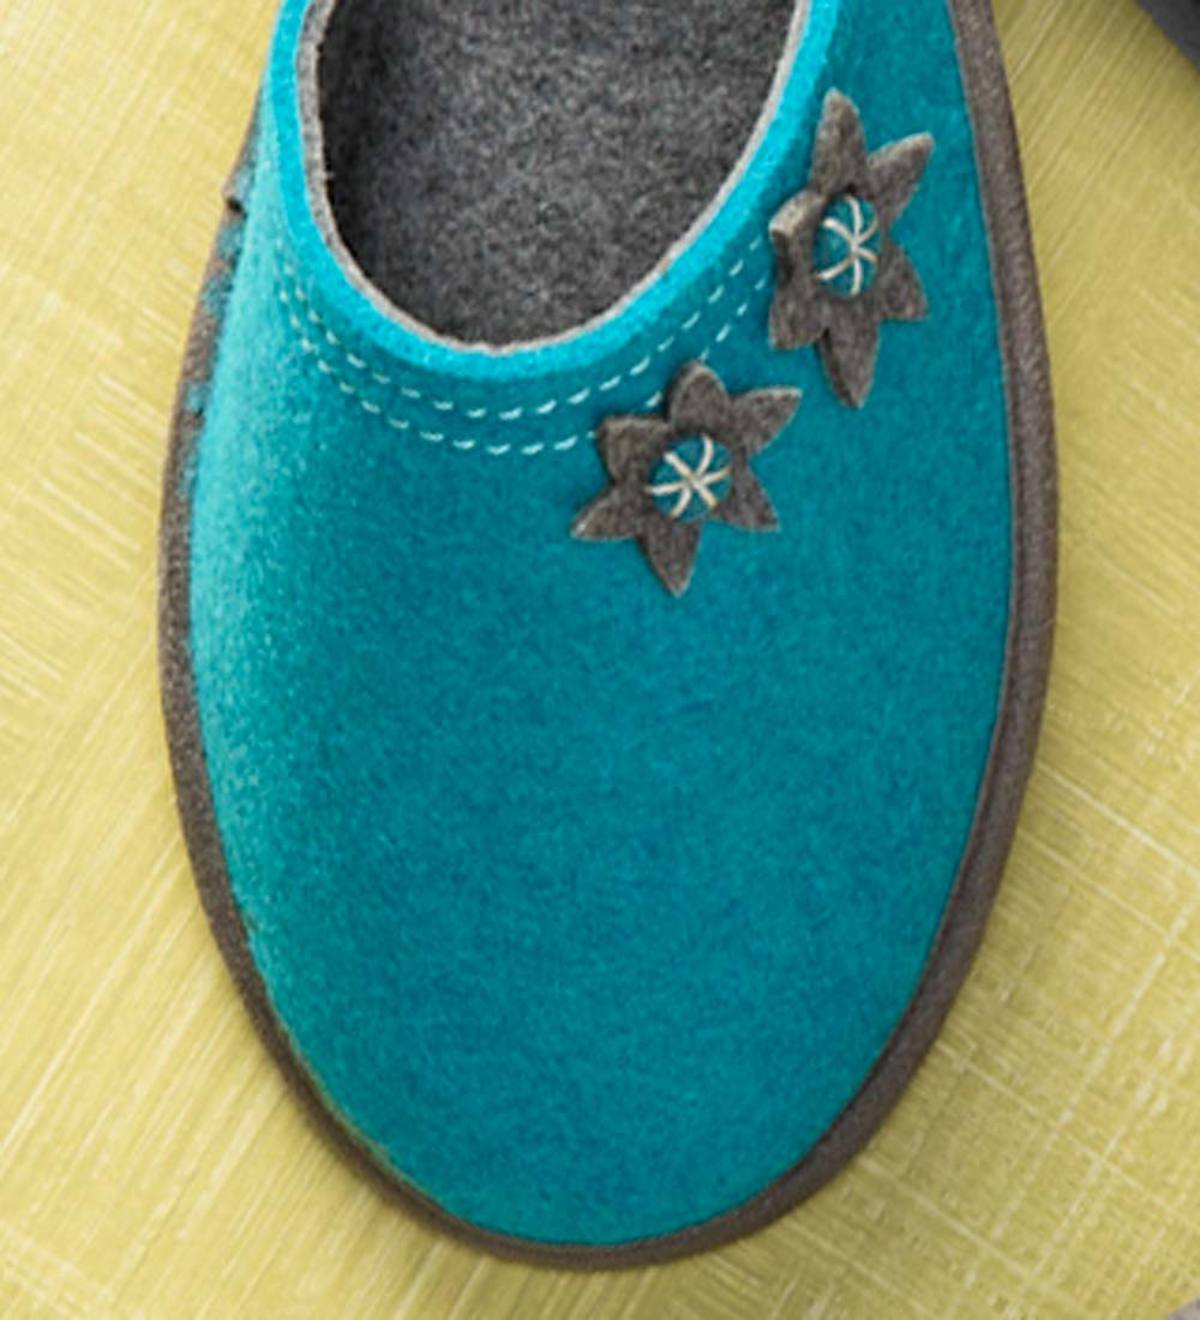 Acorn® Dorm Scuff Womens Slippers - Teal - Size 6